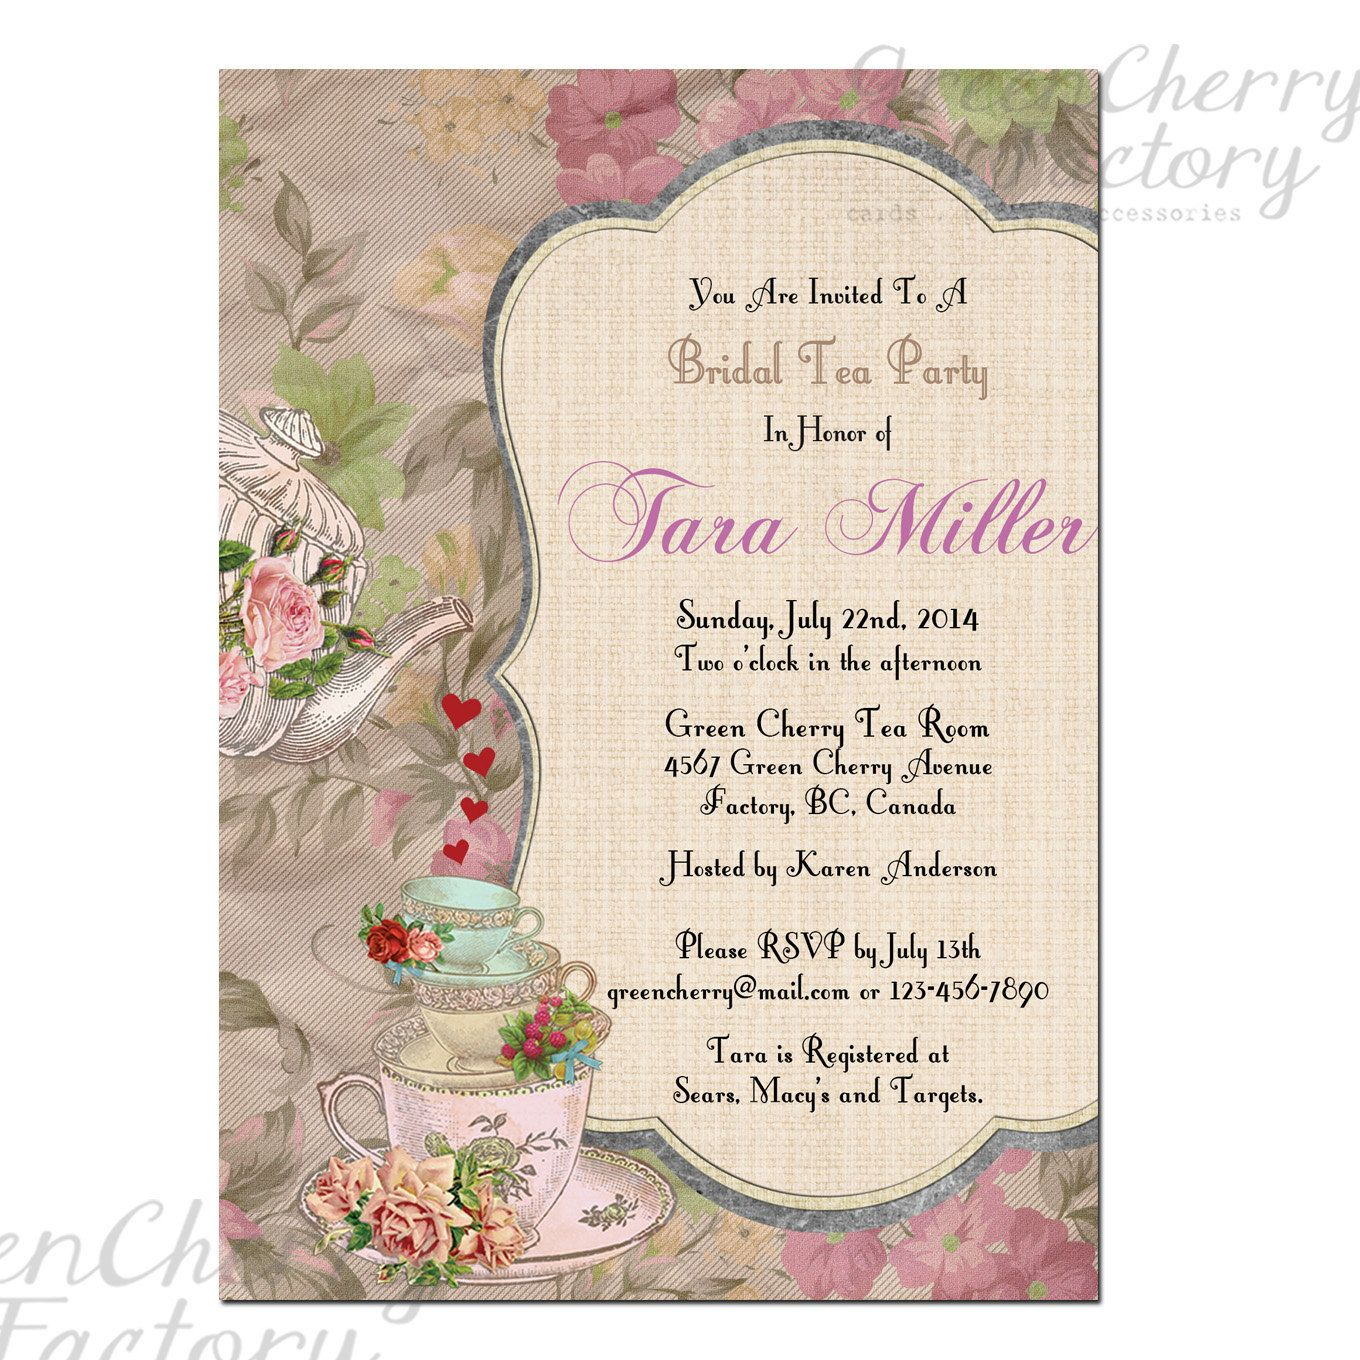 High tea baby shower invitation templates juvecenitdelacabrera high tea baby shower invitation templates shabby spring bridal shower high tea invite baby shower tea party stopboris Images